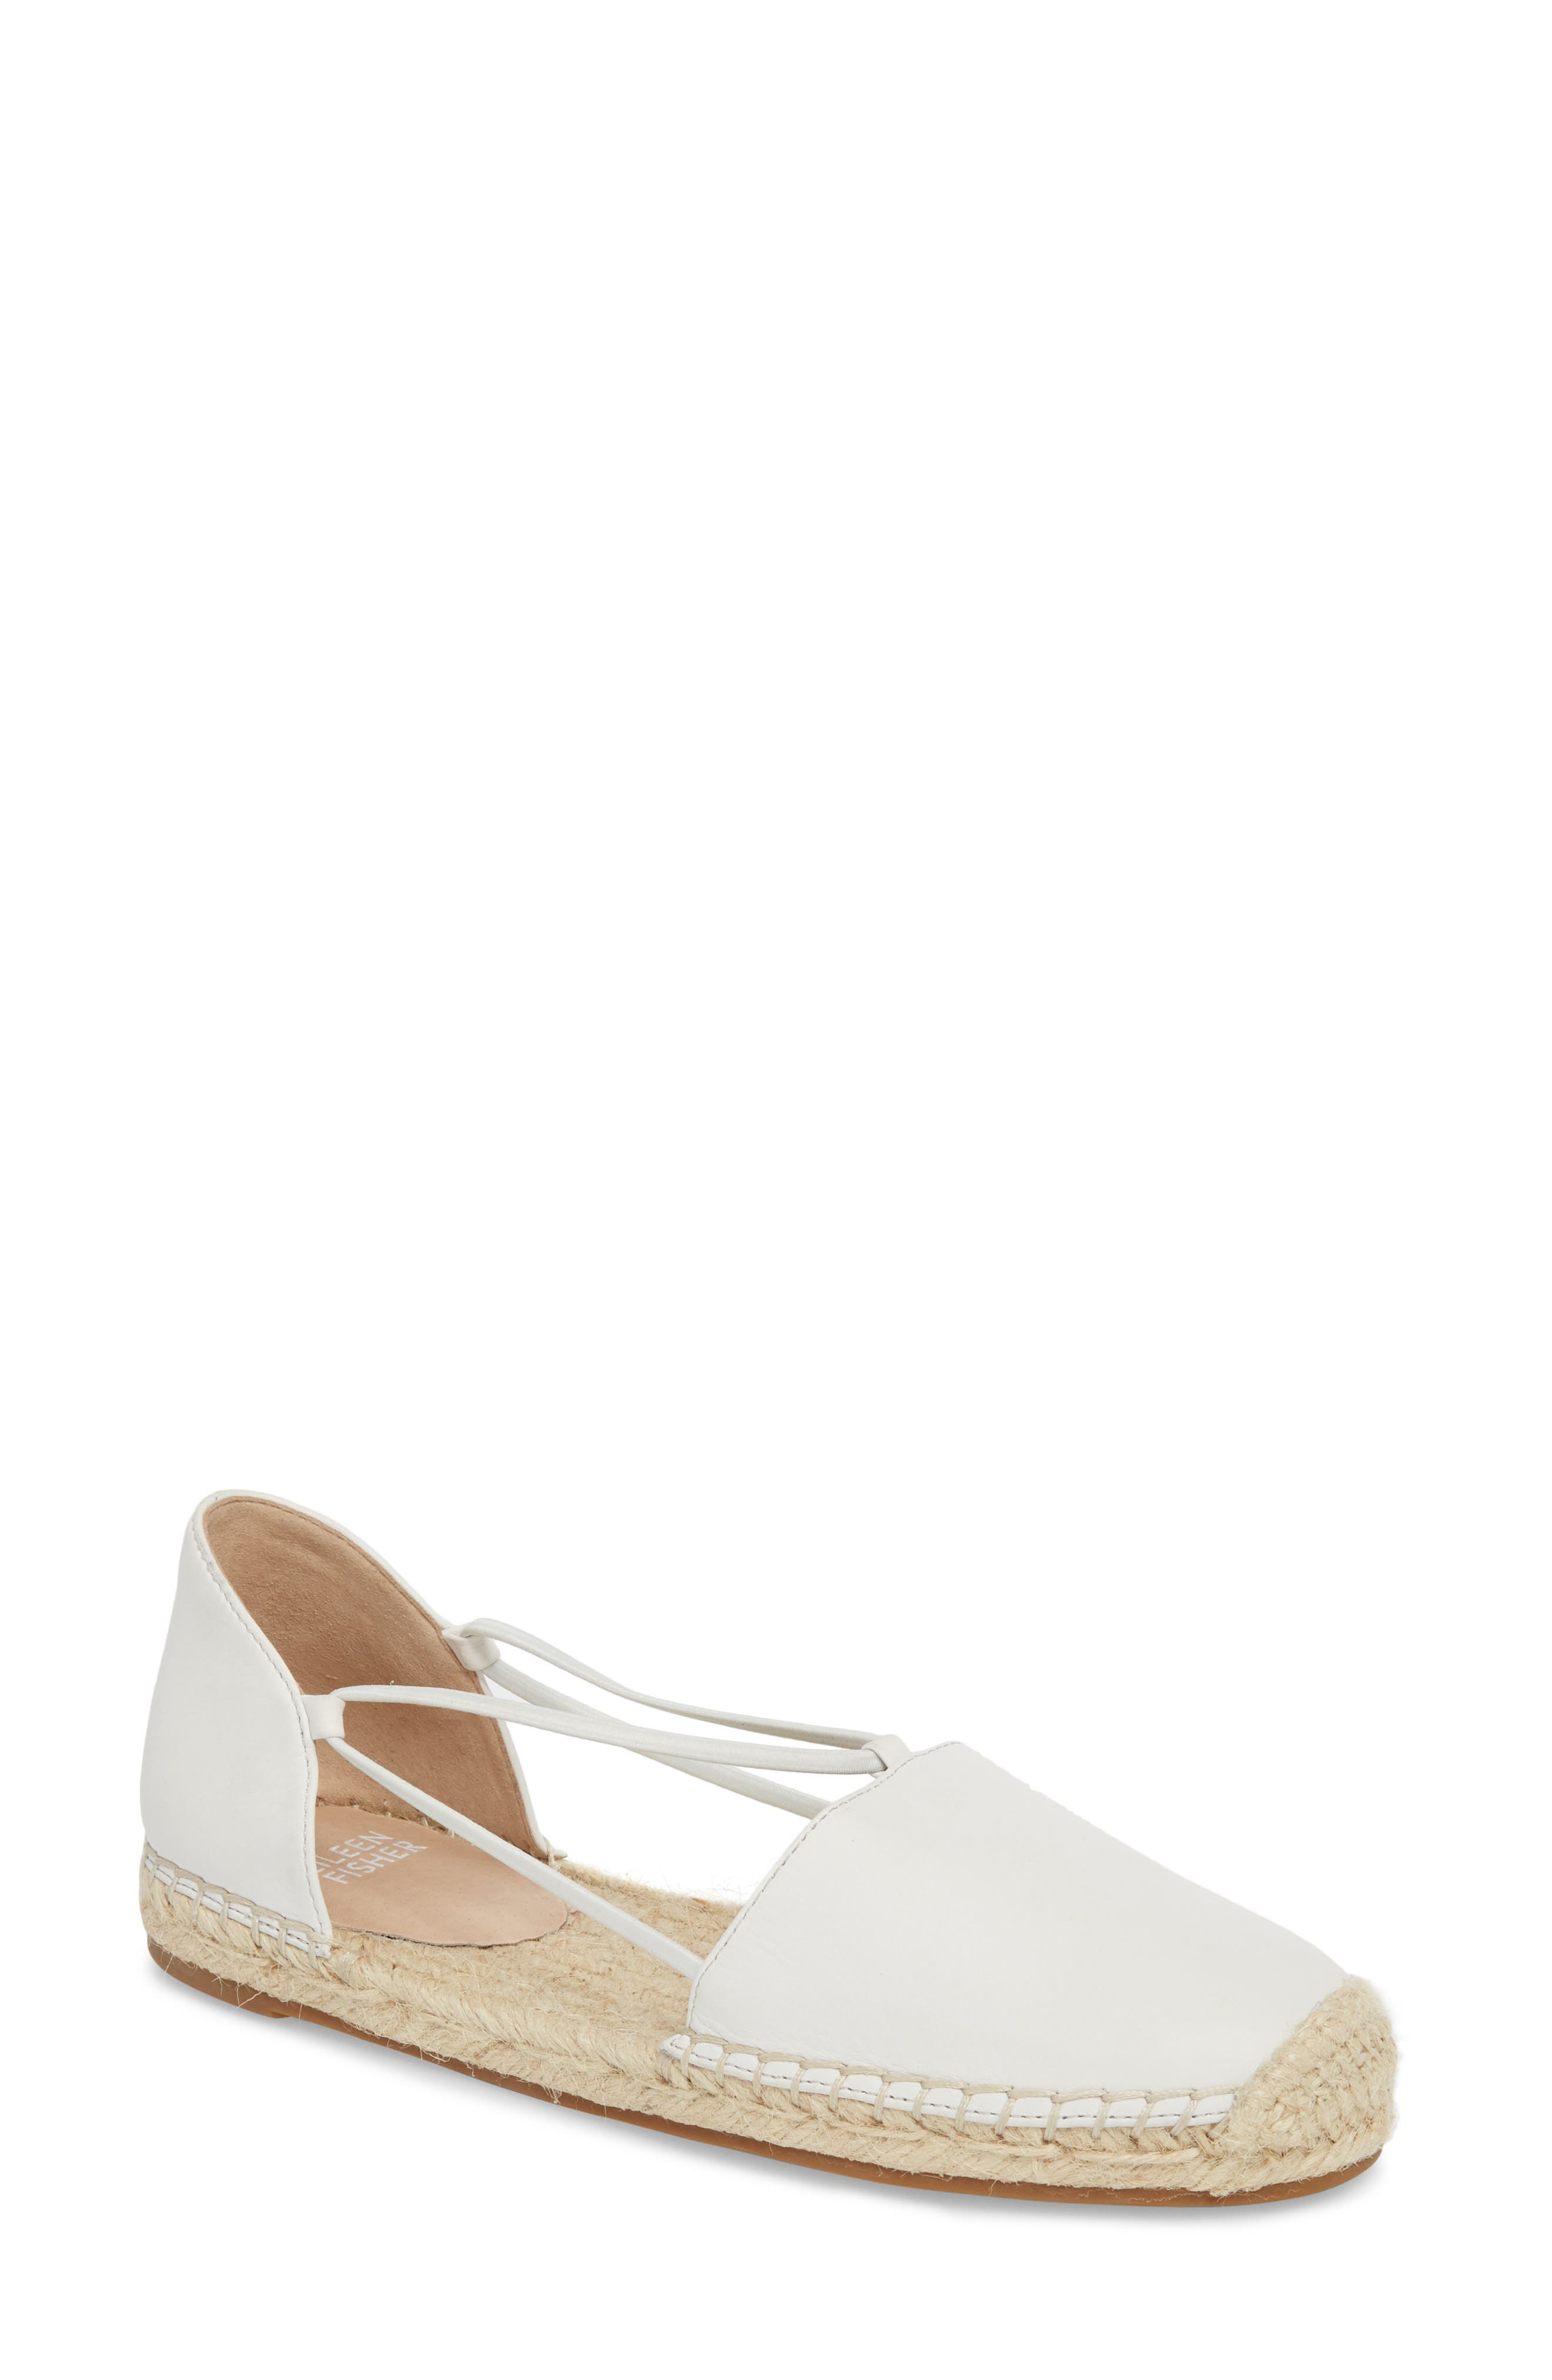 Image of Eileen Fisher Lee Espadrille Flat